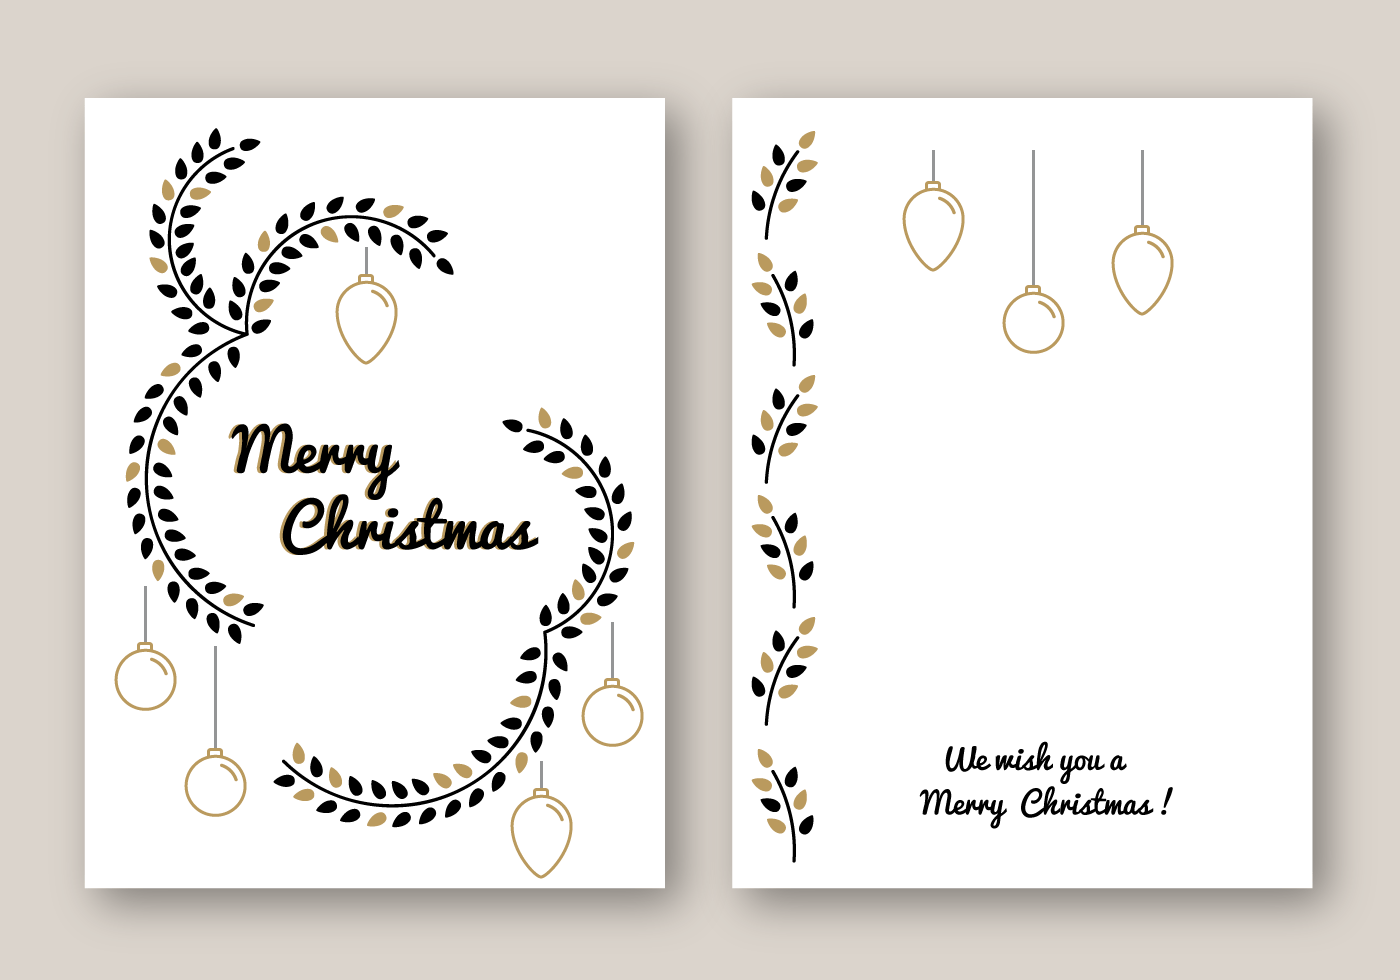 Free Merry Christmas Card Vector Download Free Vector